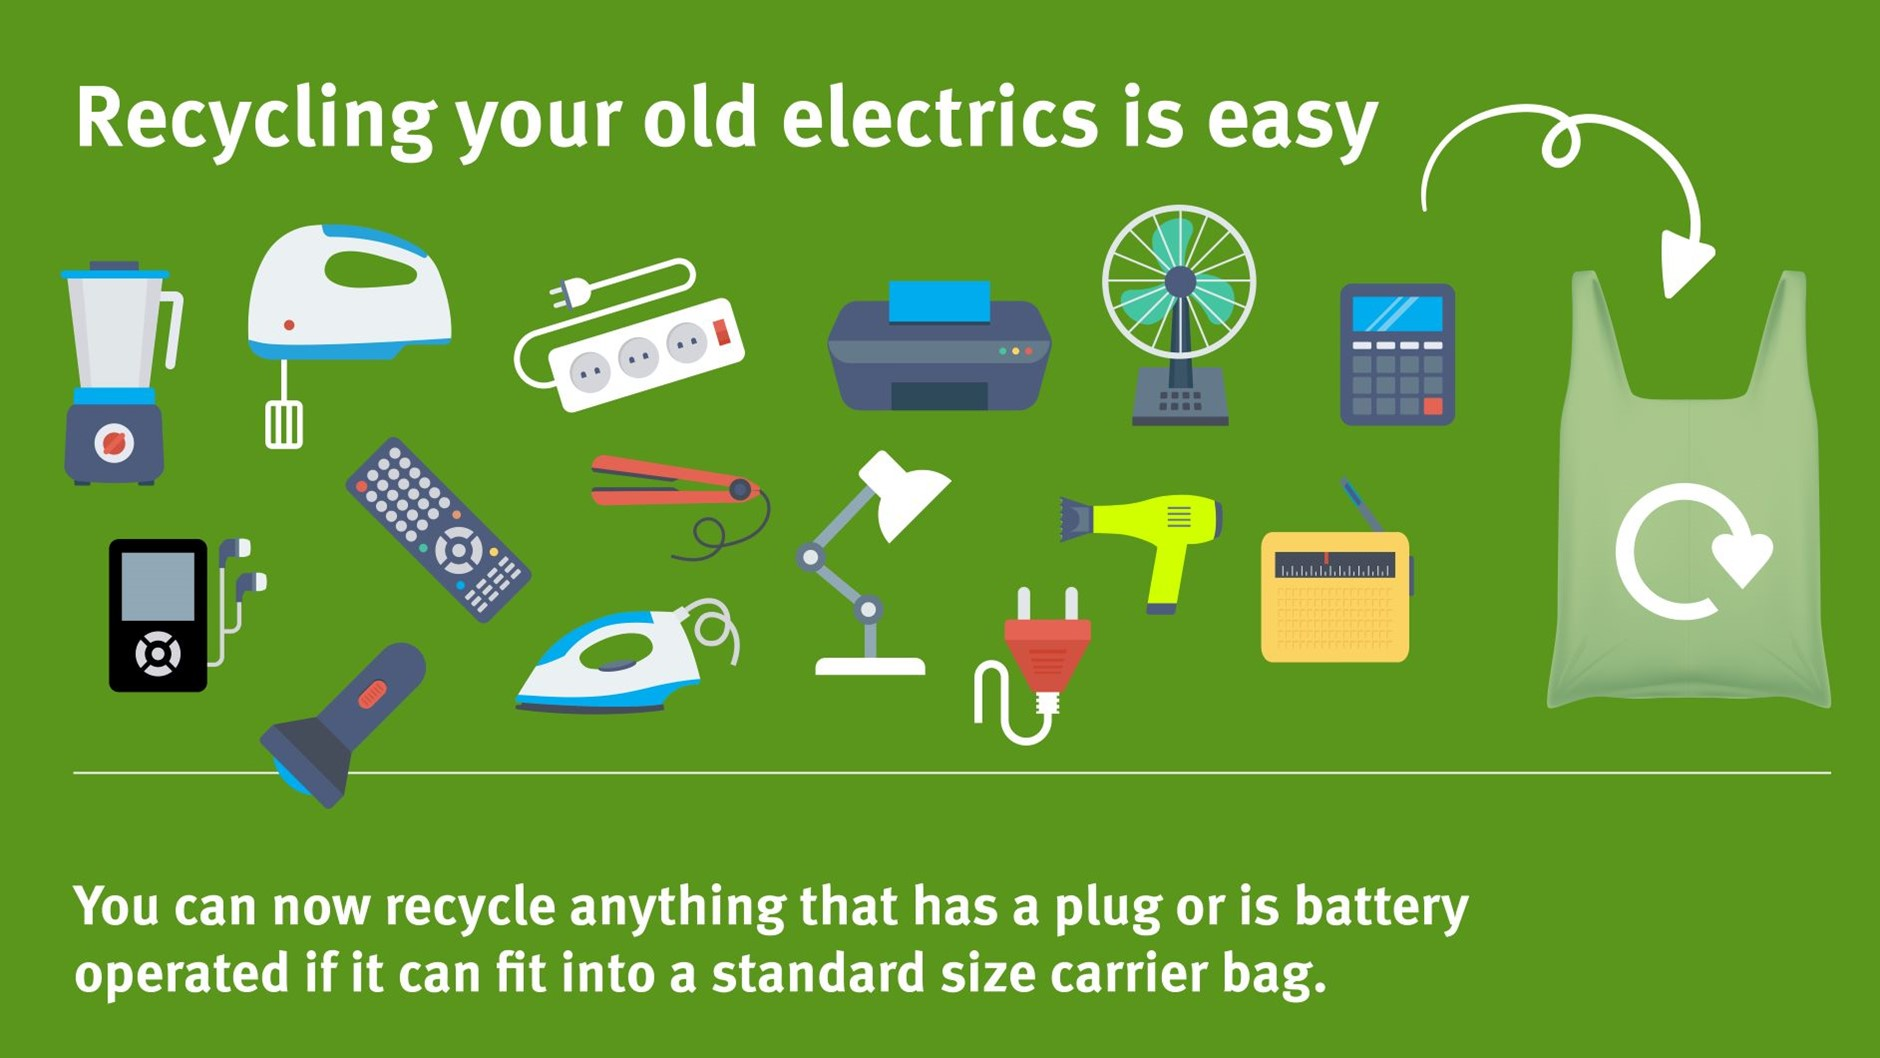 Recycling electric items